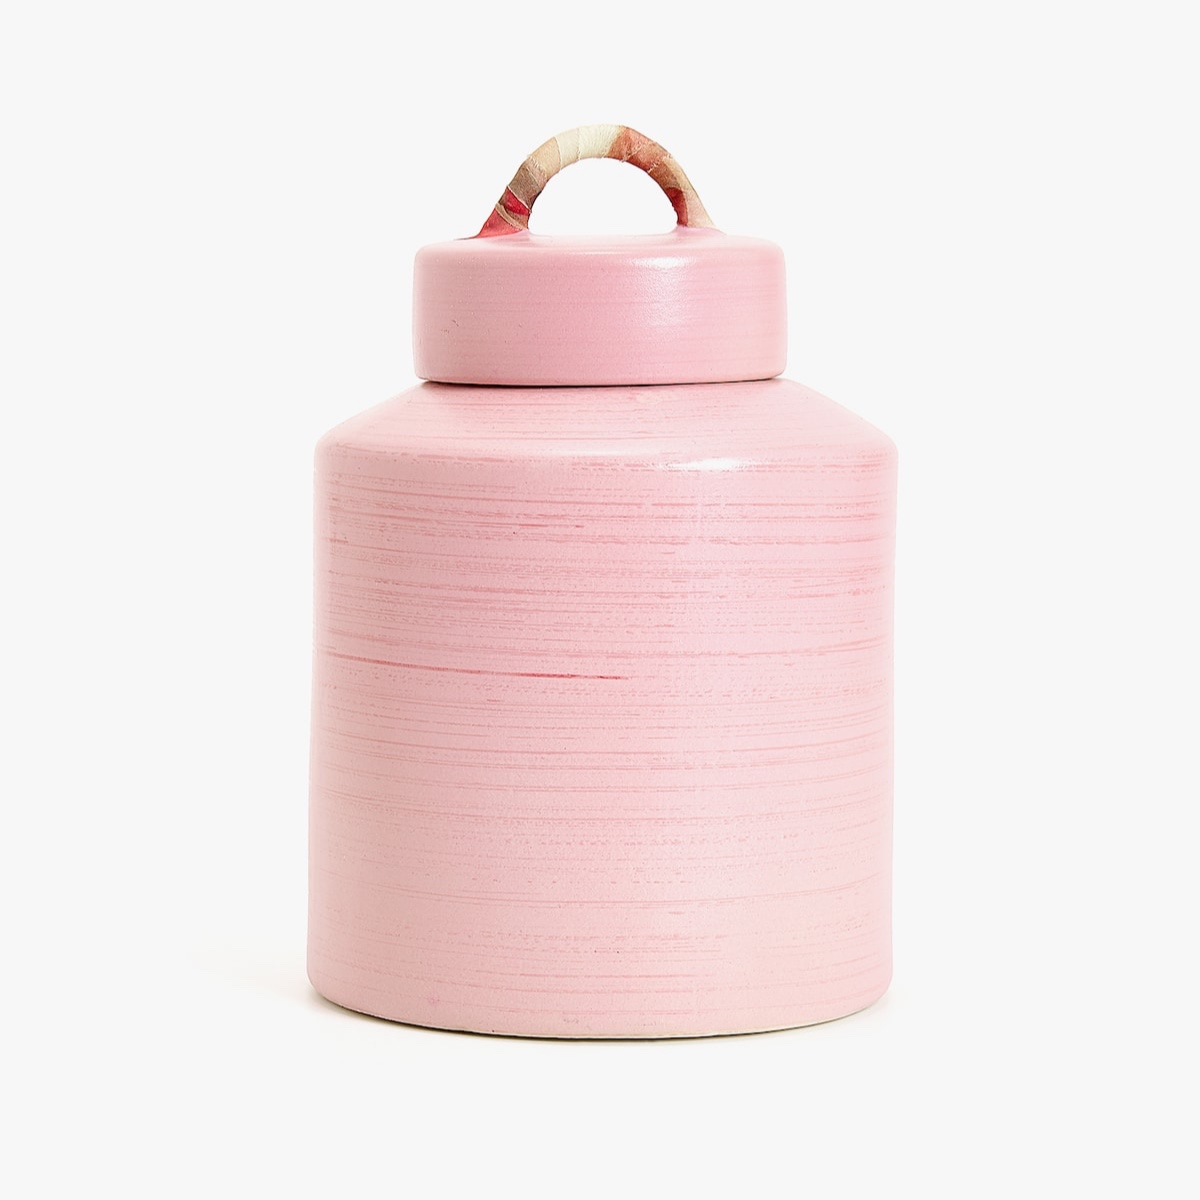 Fabric Applique Jar: Reduced to £9.99 from £29.99